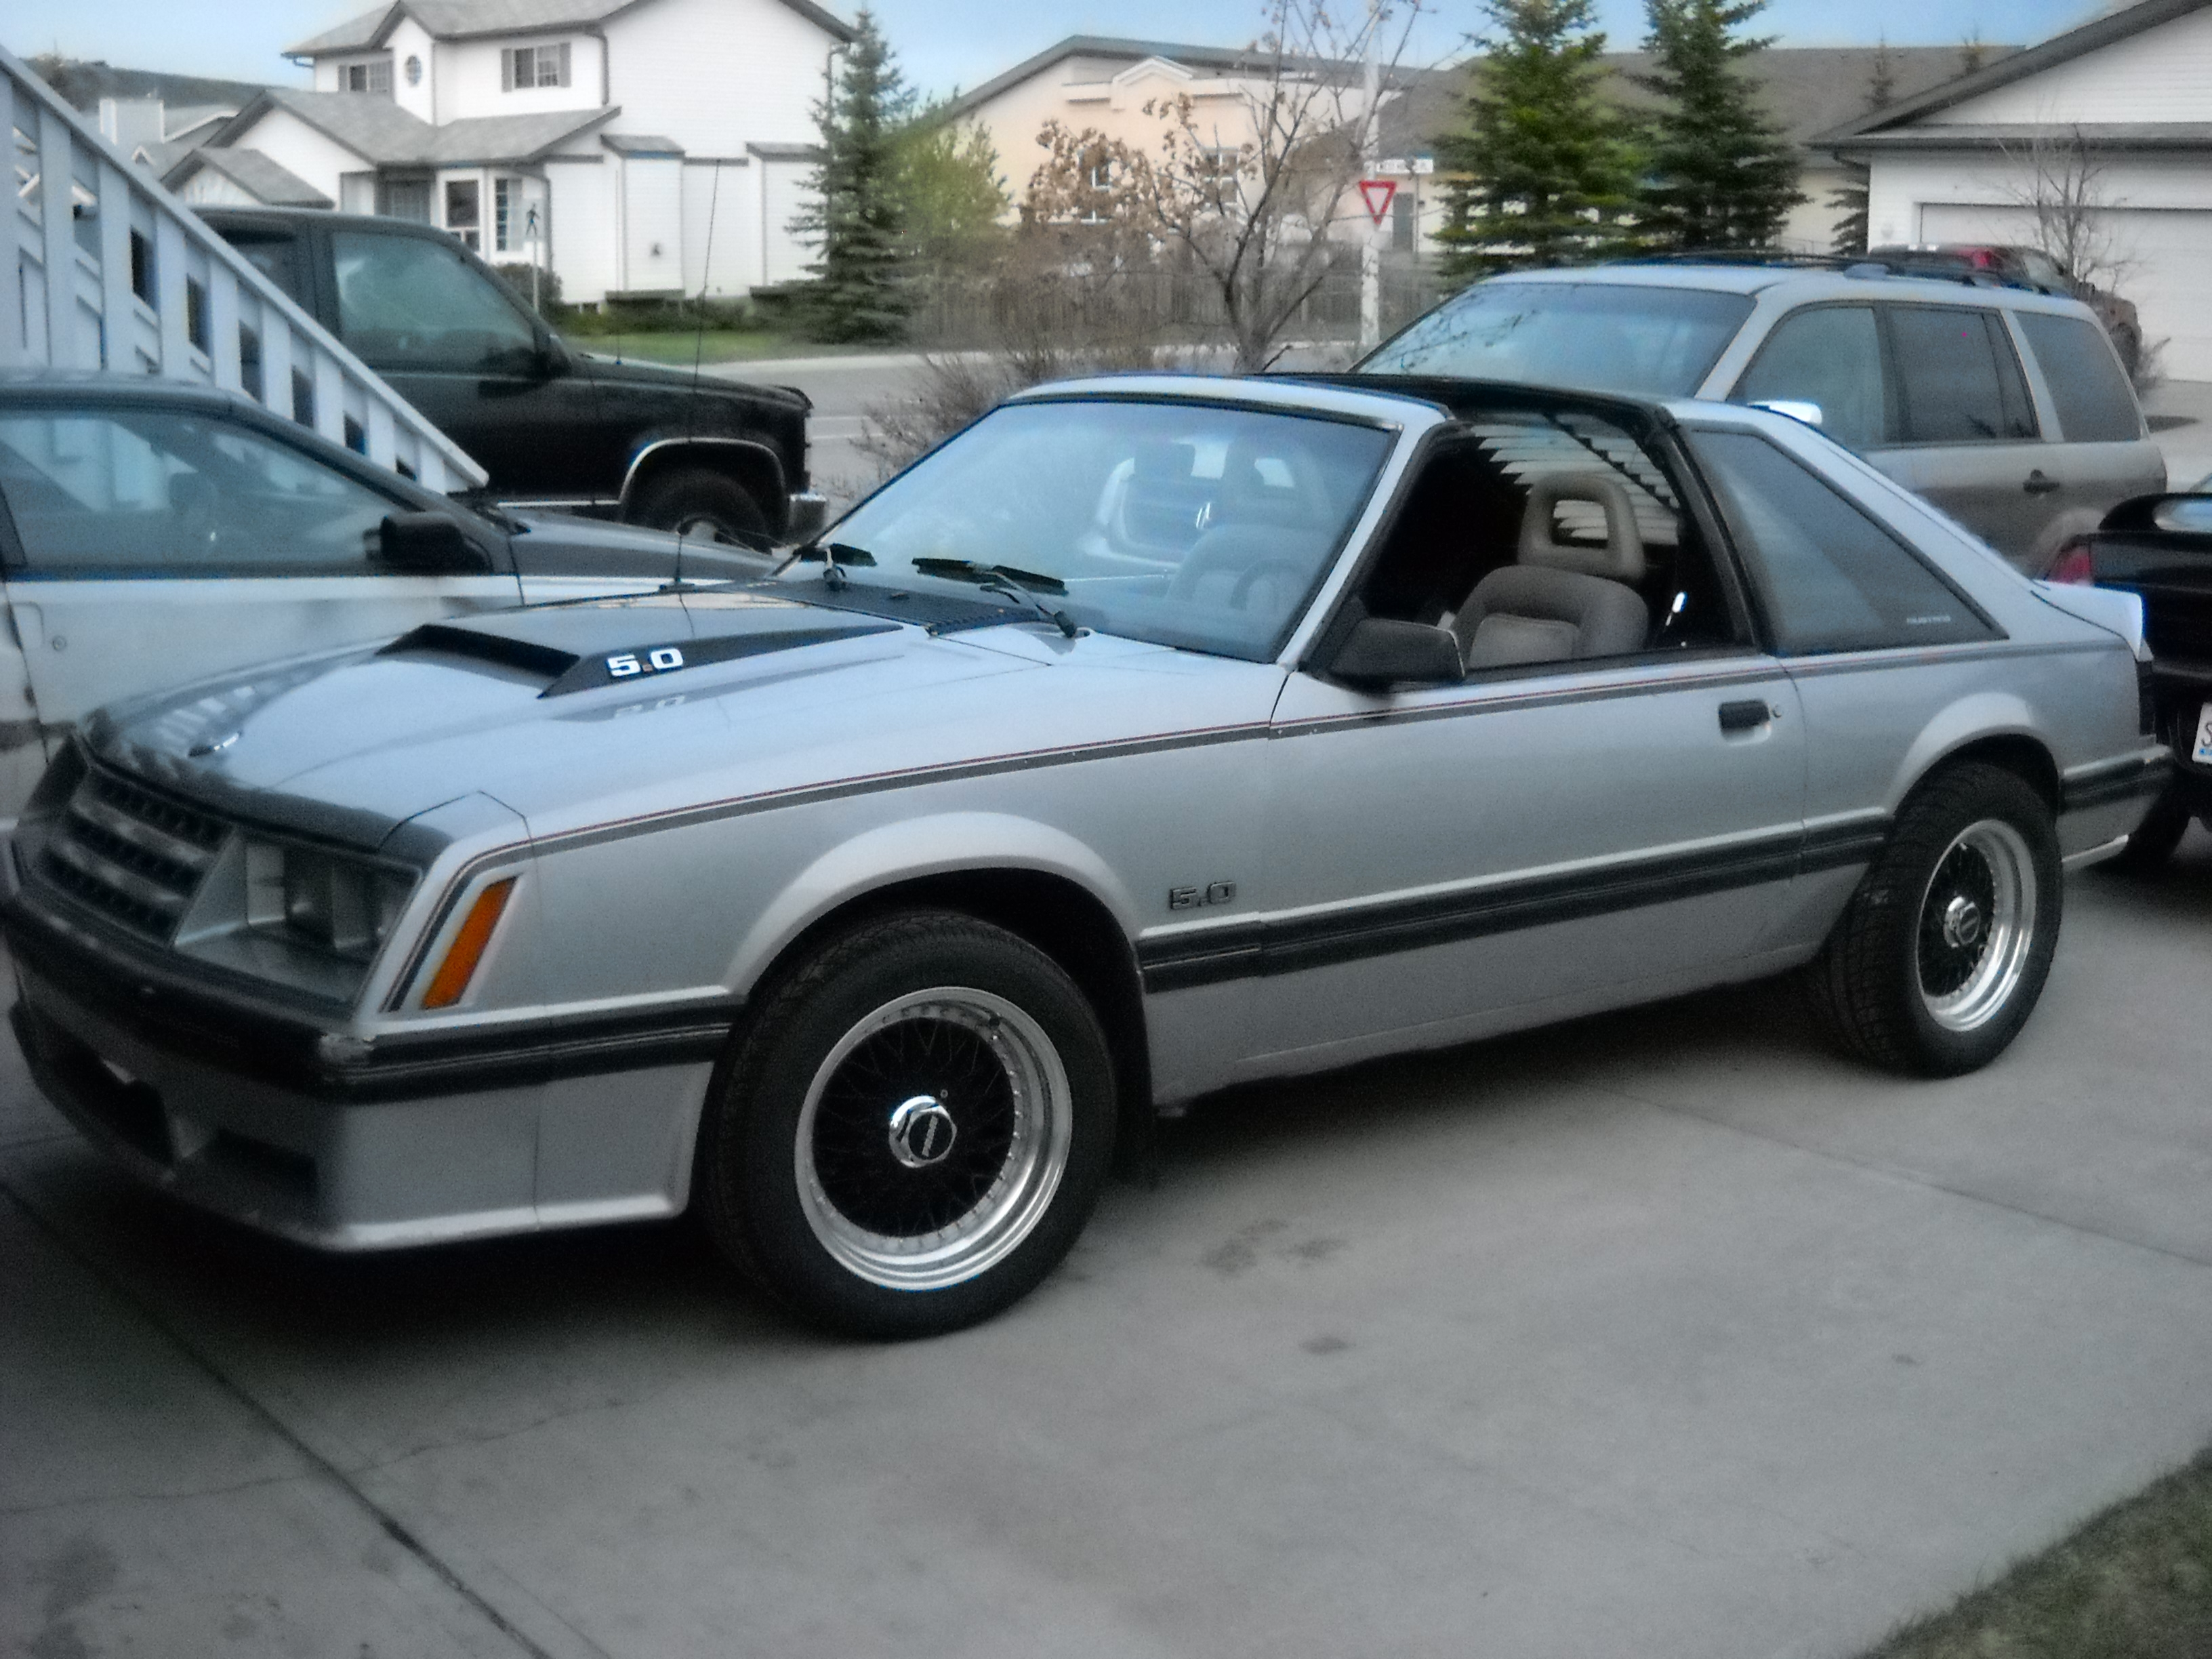 silver stangergt 1982 ford mustang specs photos modification info at cardomain. Black Bedroom Furniture Sets. Home Design Ideas